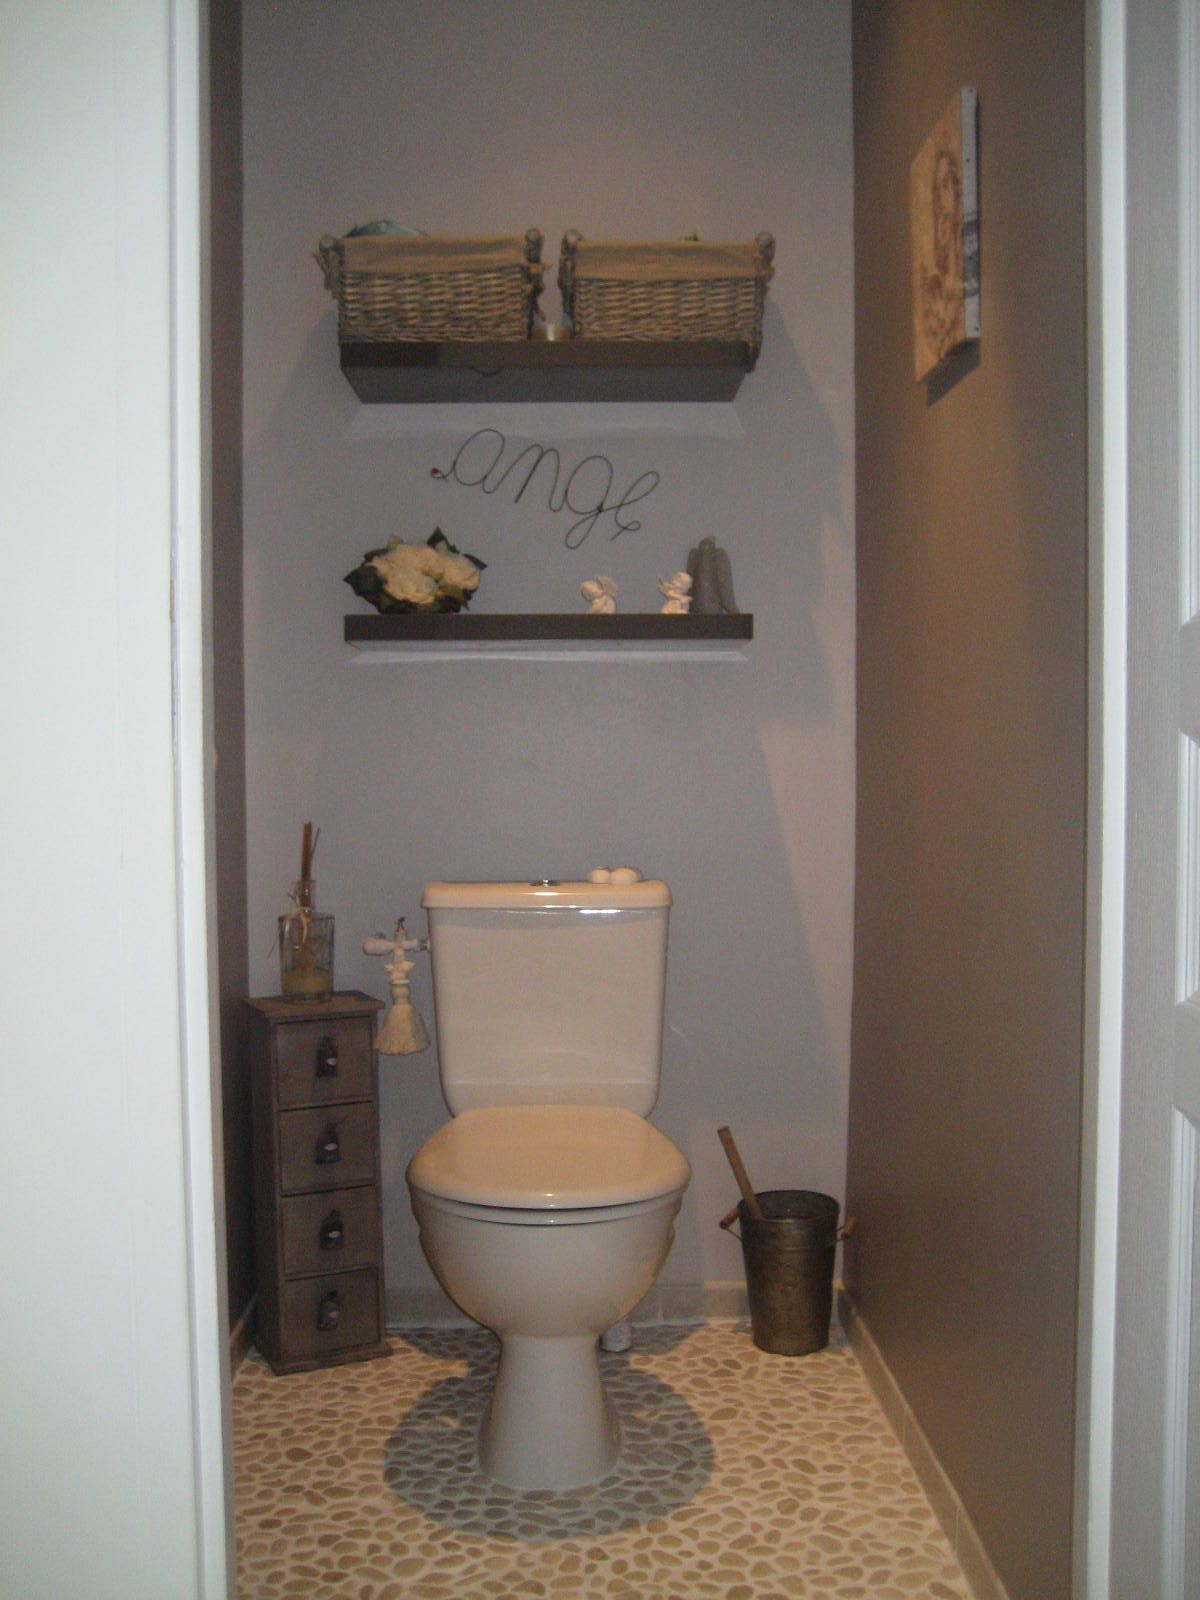 Toilette deco google search nouvelle maison for Deco originale maison